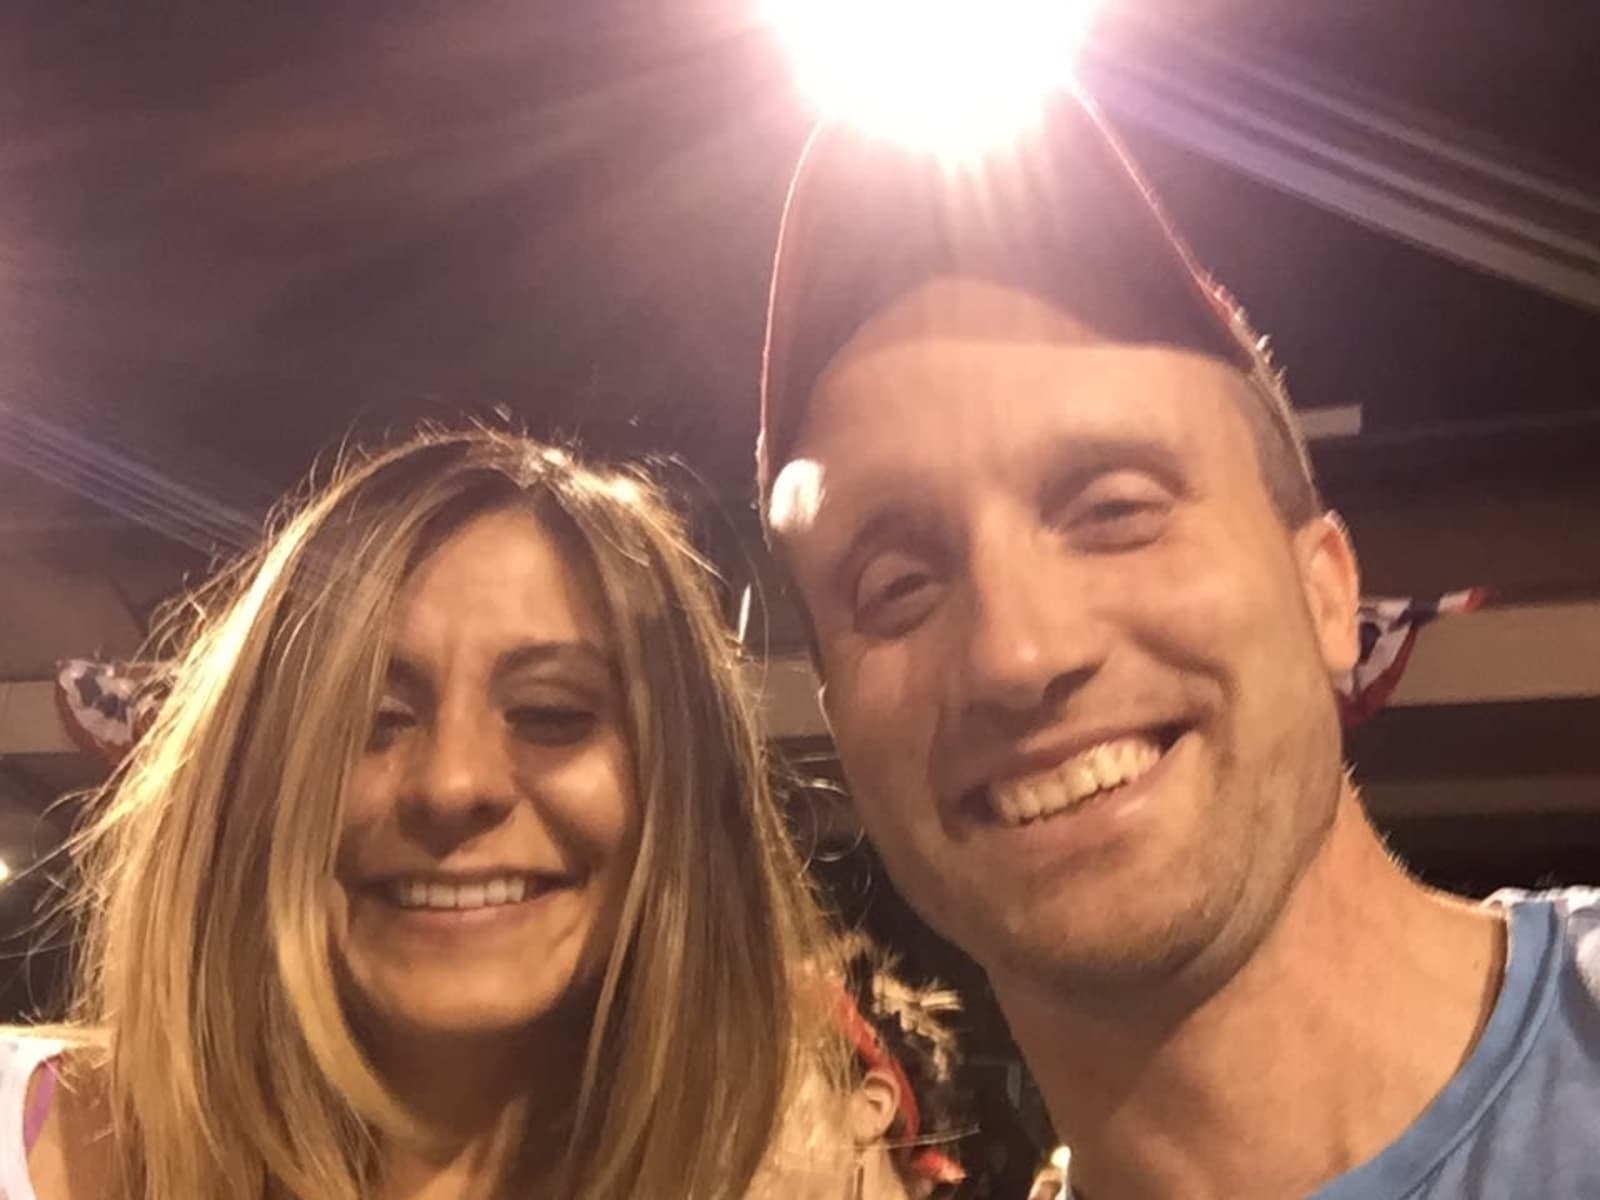 Laura and chad & Chad from Louisville, Kentucky, United States